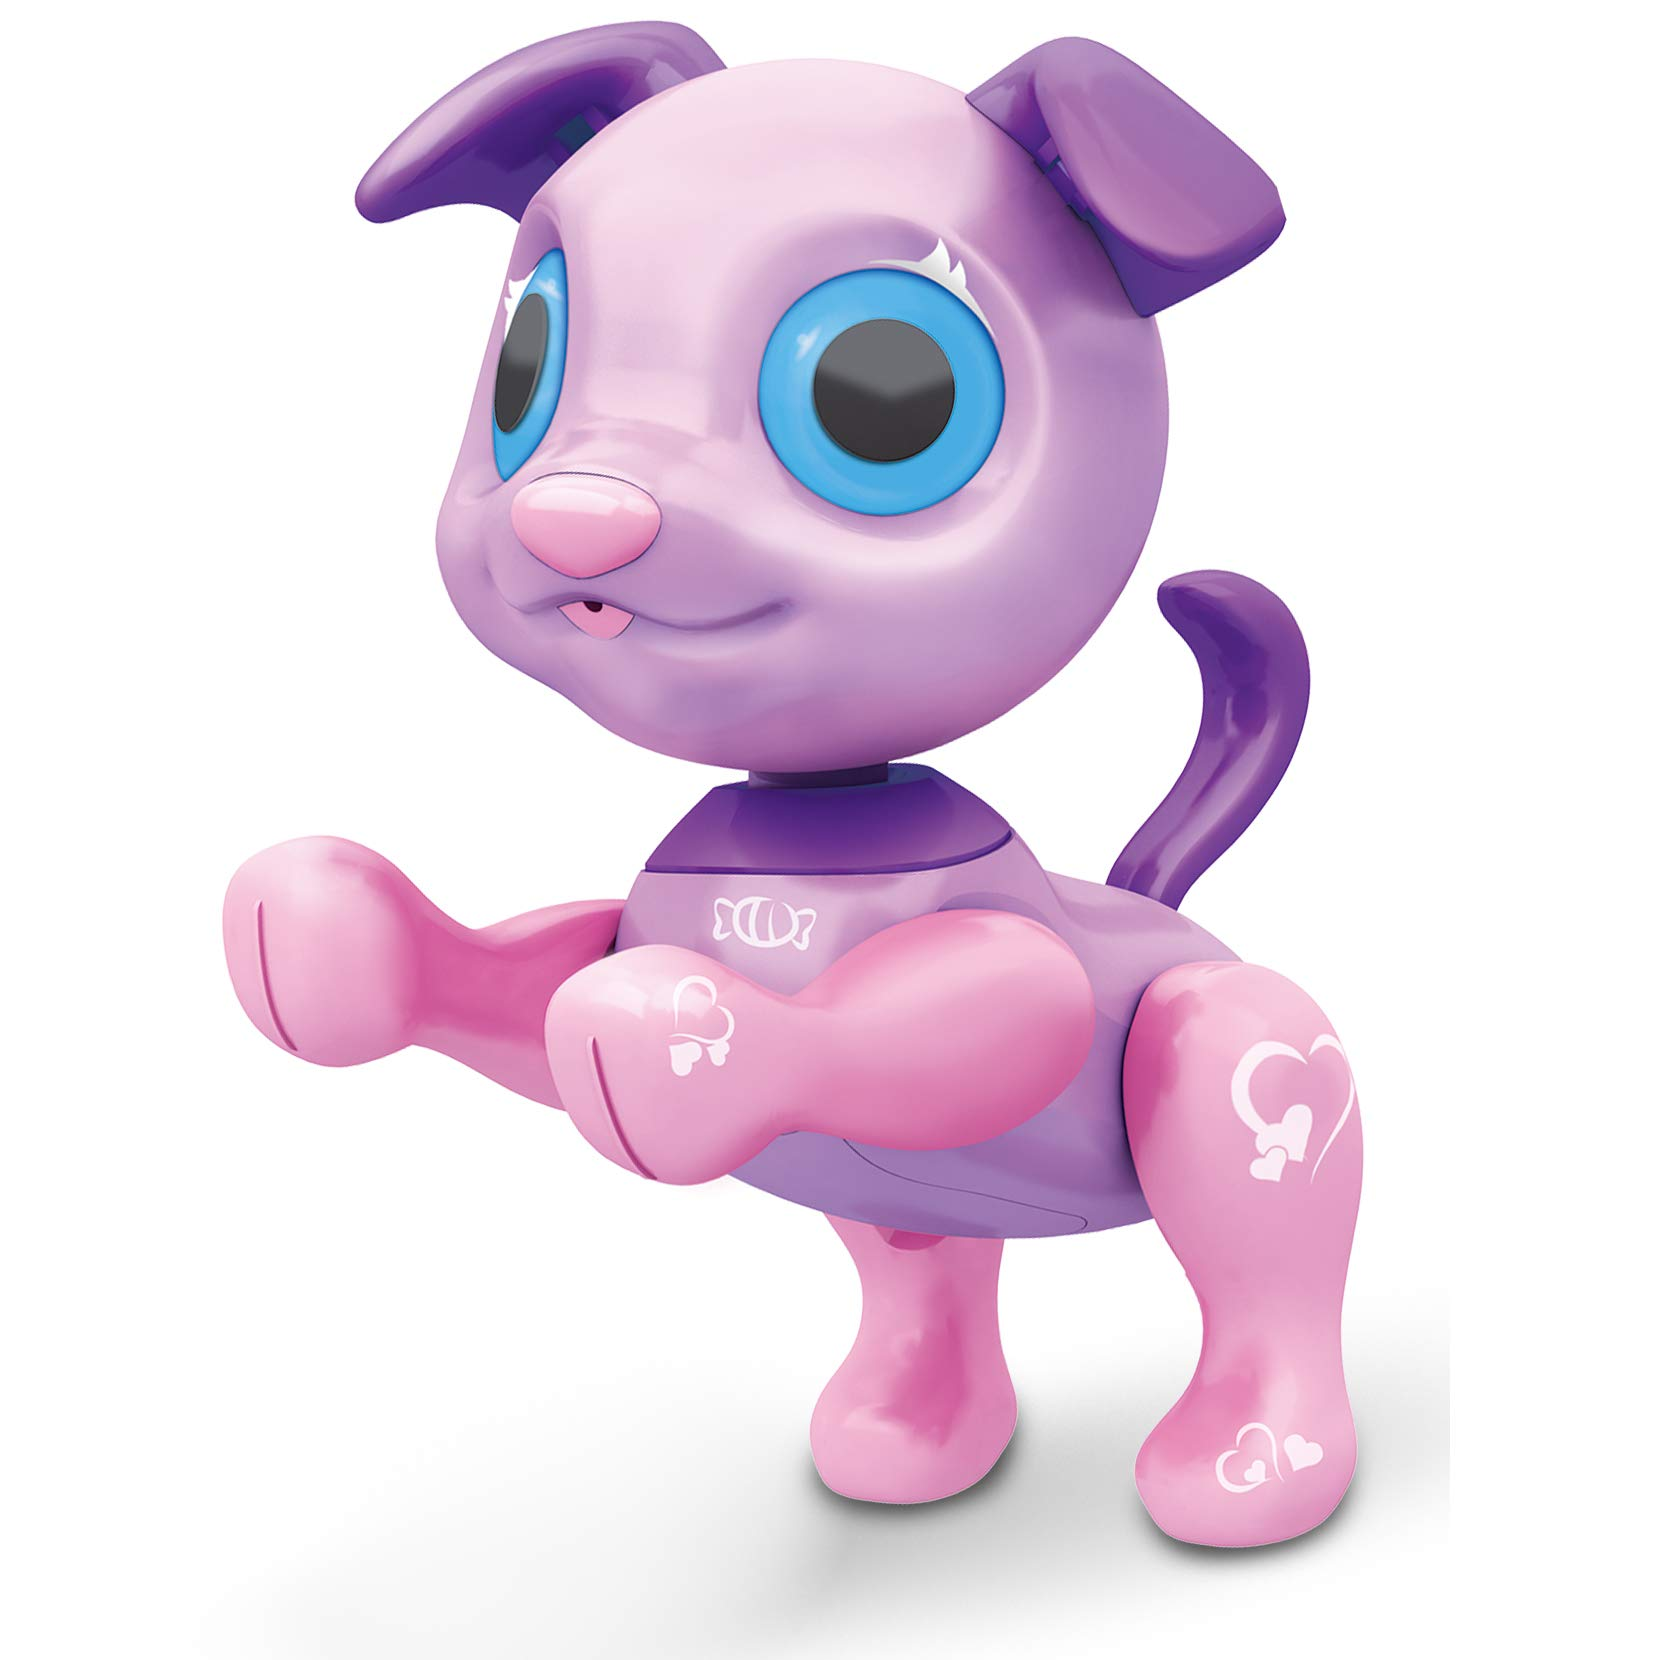 Liberty Imports My Best Friend Interactive Smart Puppy | Kids Electronic Pet Toy Robot Dog | Ideal Gift Idea for Girls (Purple) by Liberty Imports (Image #1)